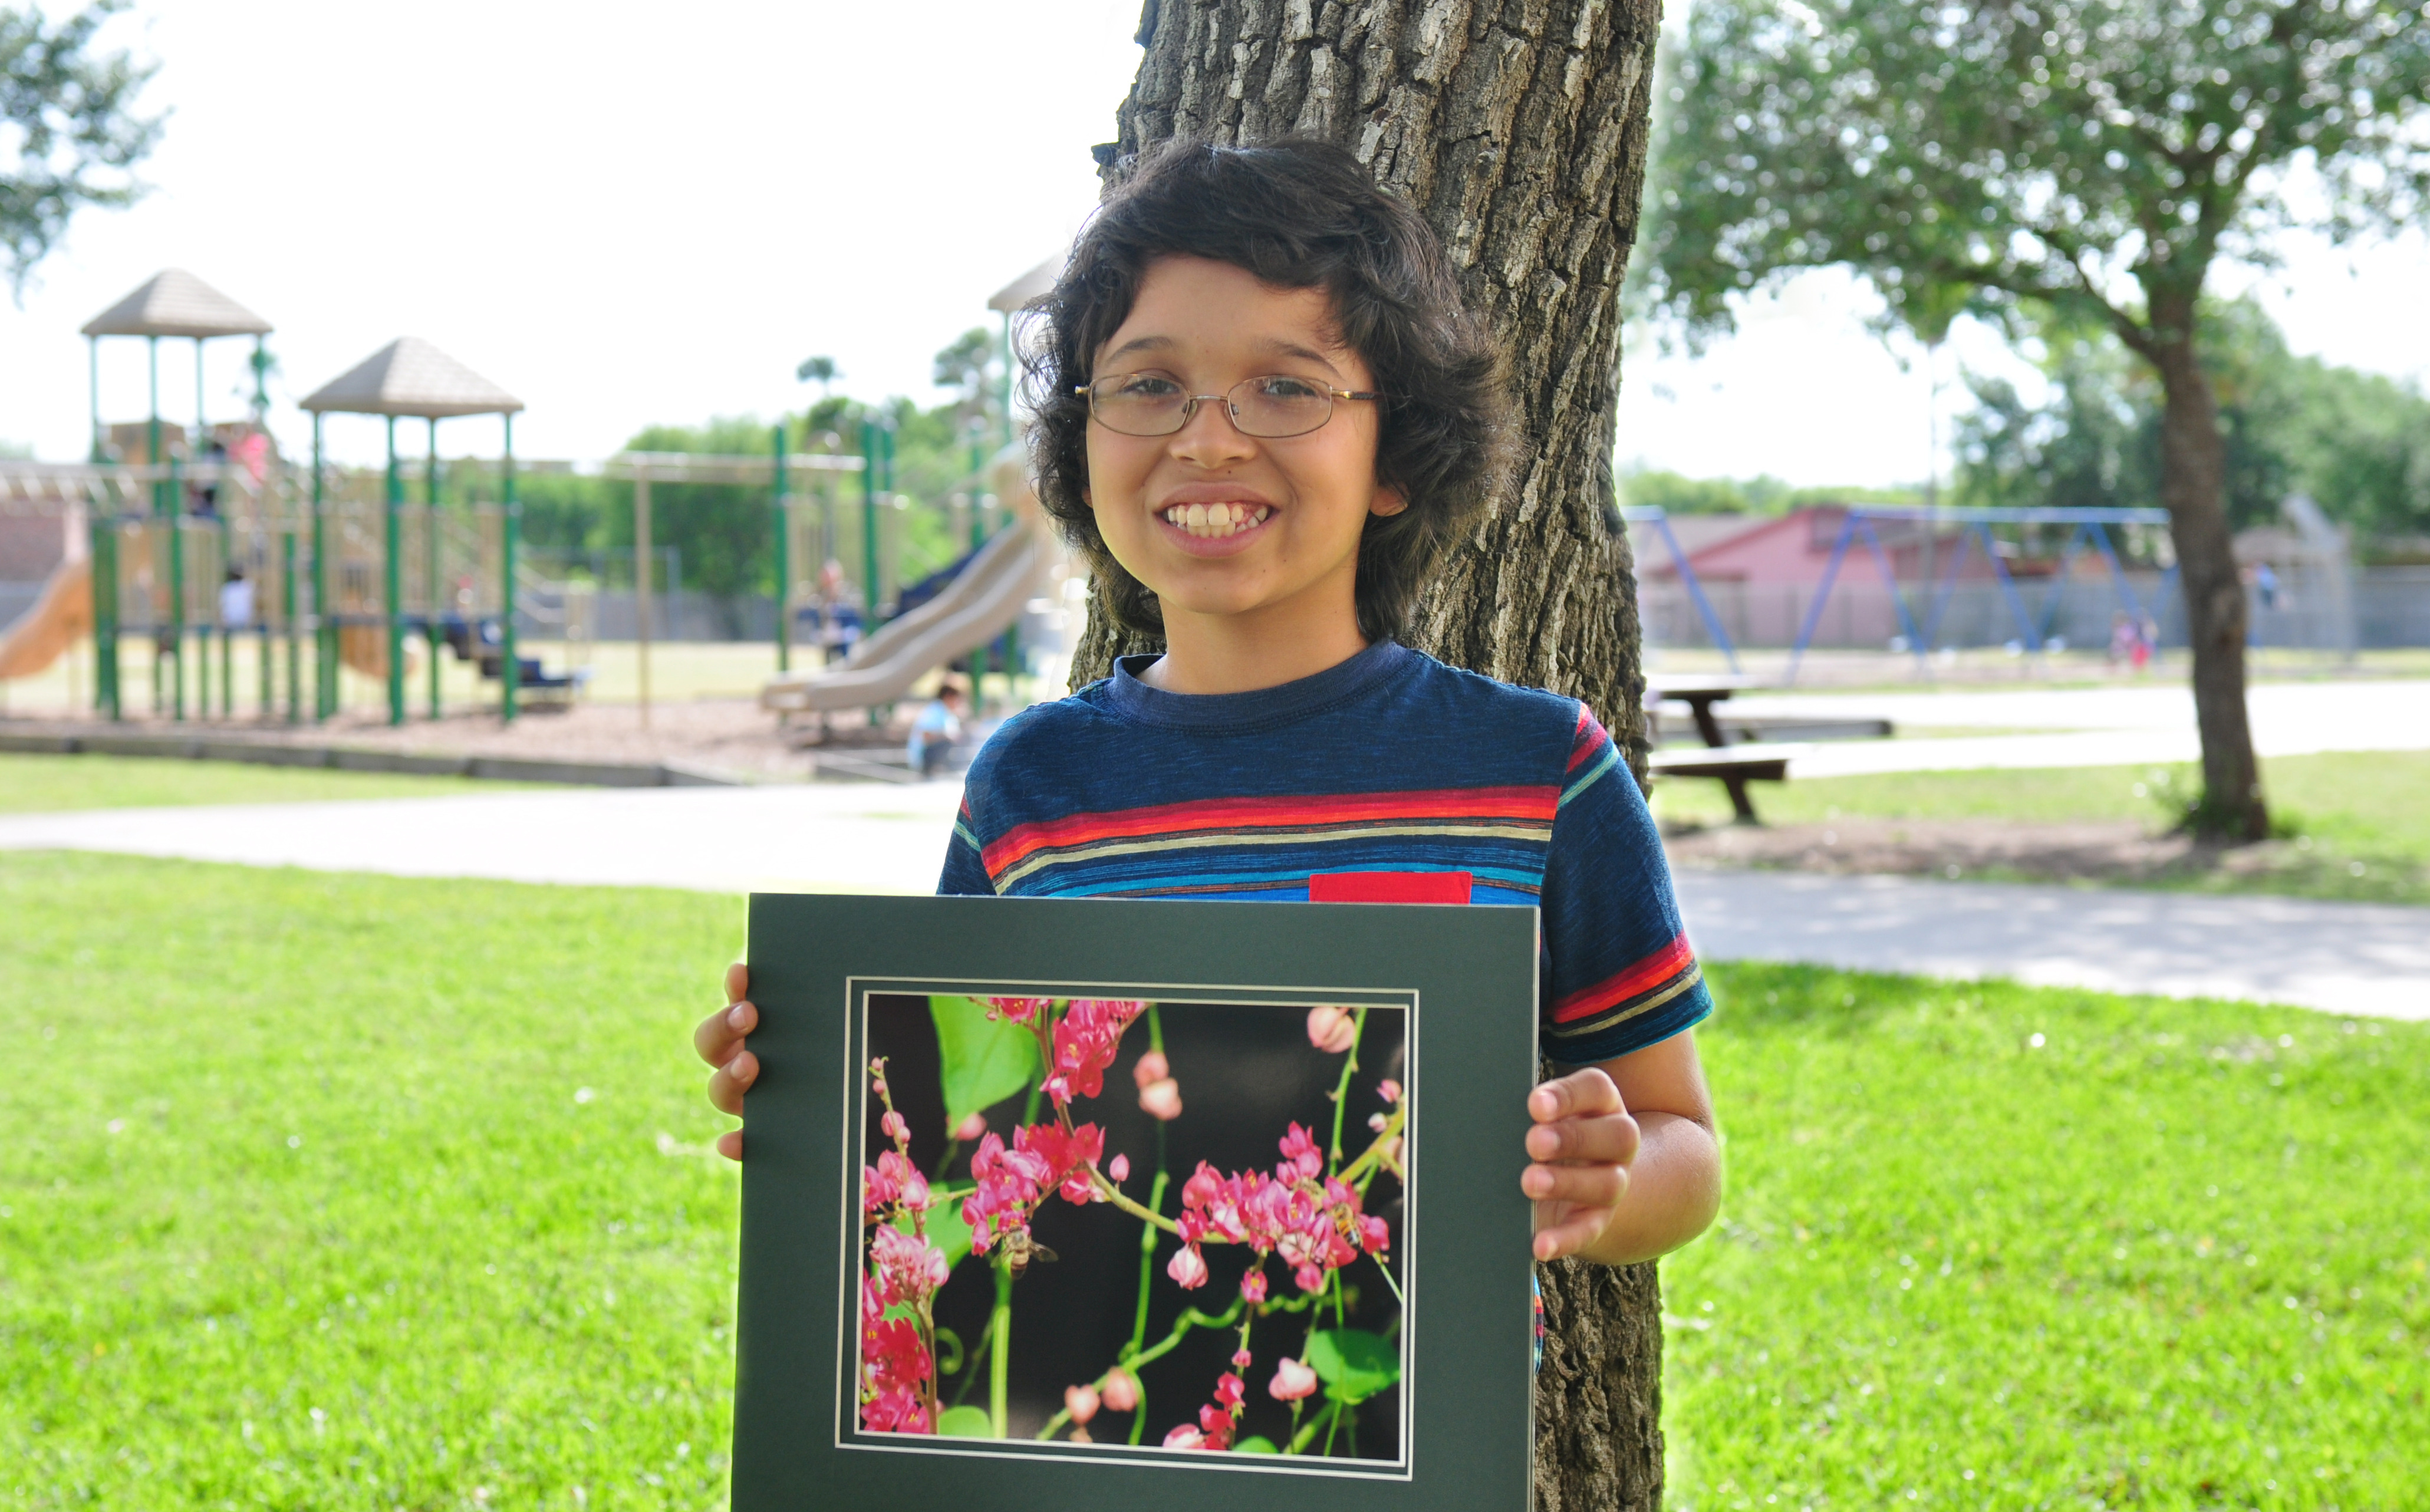 Treasure Hills Elementary student takes first place at Texas Media Awards